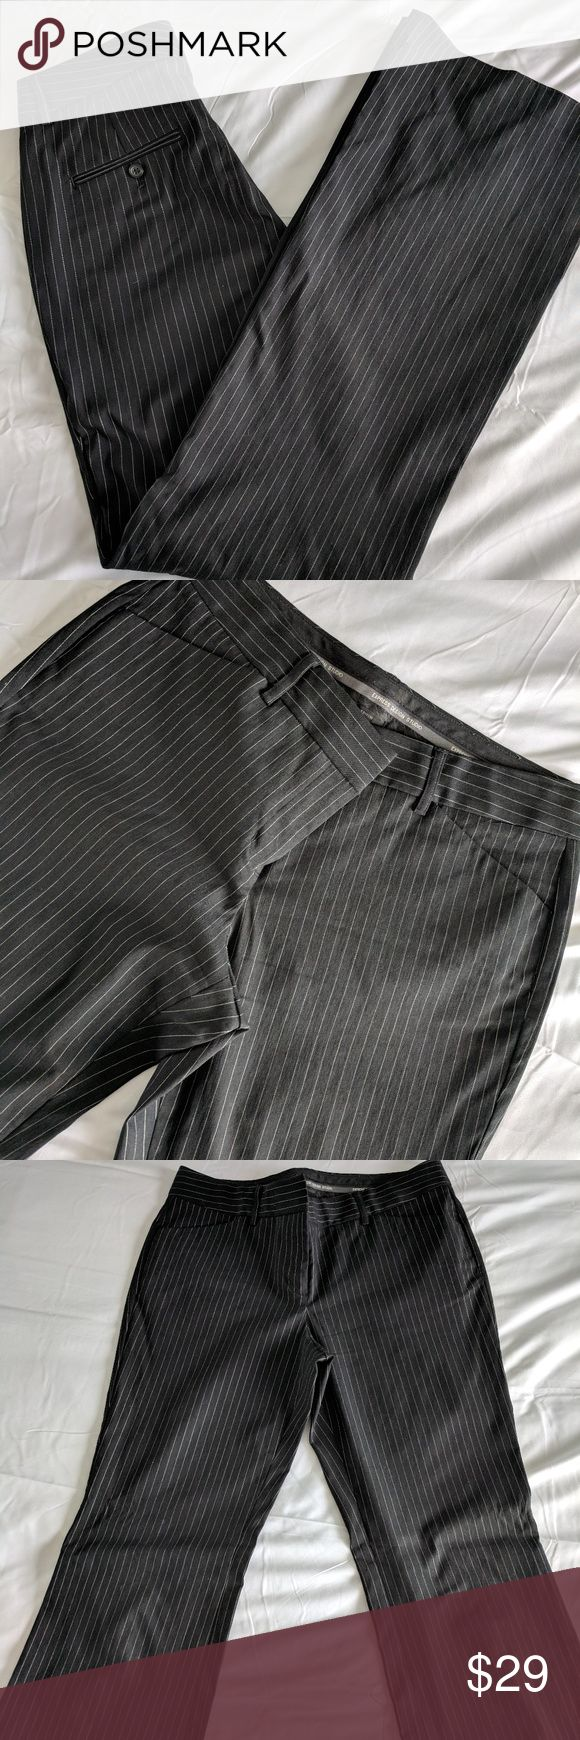 Women's Express Pinstripe Slacks Size 6 Long Women's straight leg slacks. size 6 LONG, barely worn. pocket on back, small pockets on front. Has belt loops.   Brand: Express Size: 6 Long Color: pinstripes black and white Condition: Previously loved.   Bundle Discounts and reasonable offers accepted, just ask..  Thank you for browsing! Express Pants Trousers